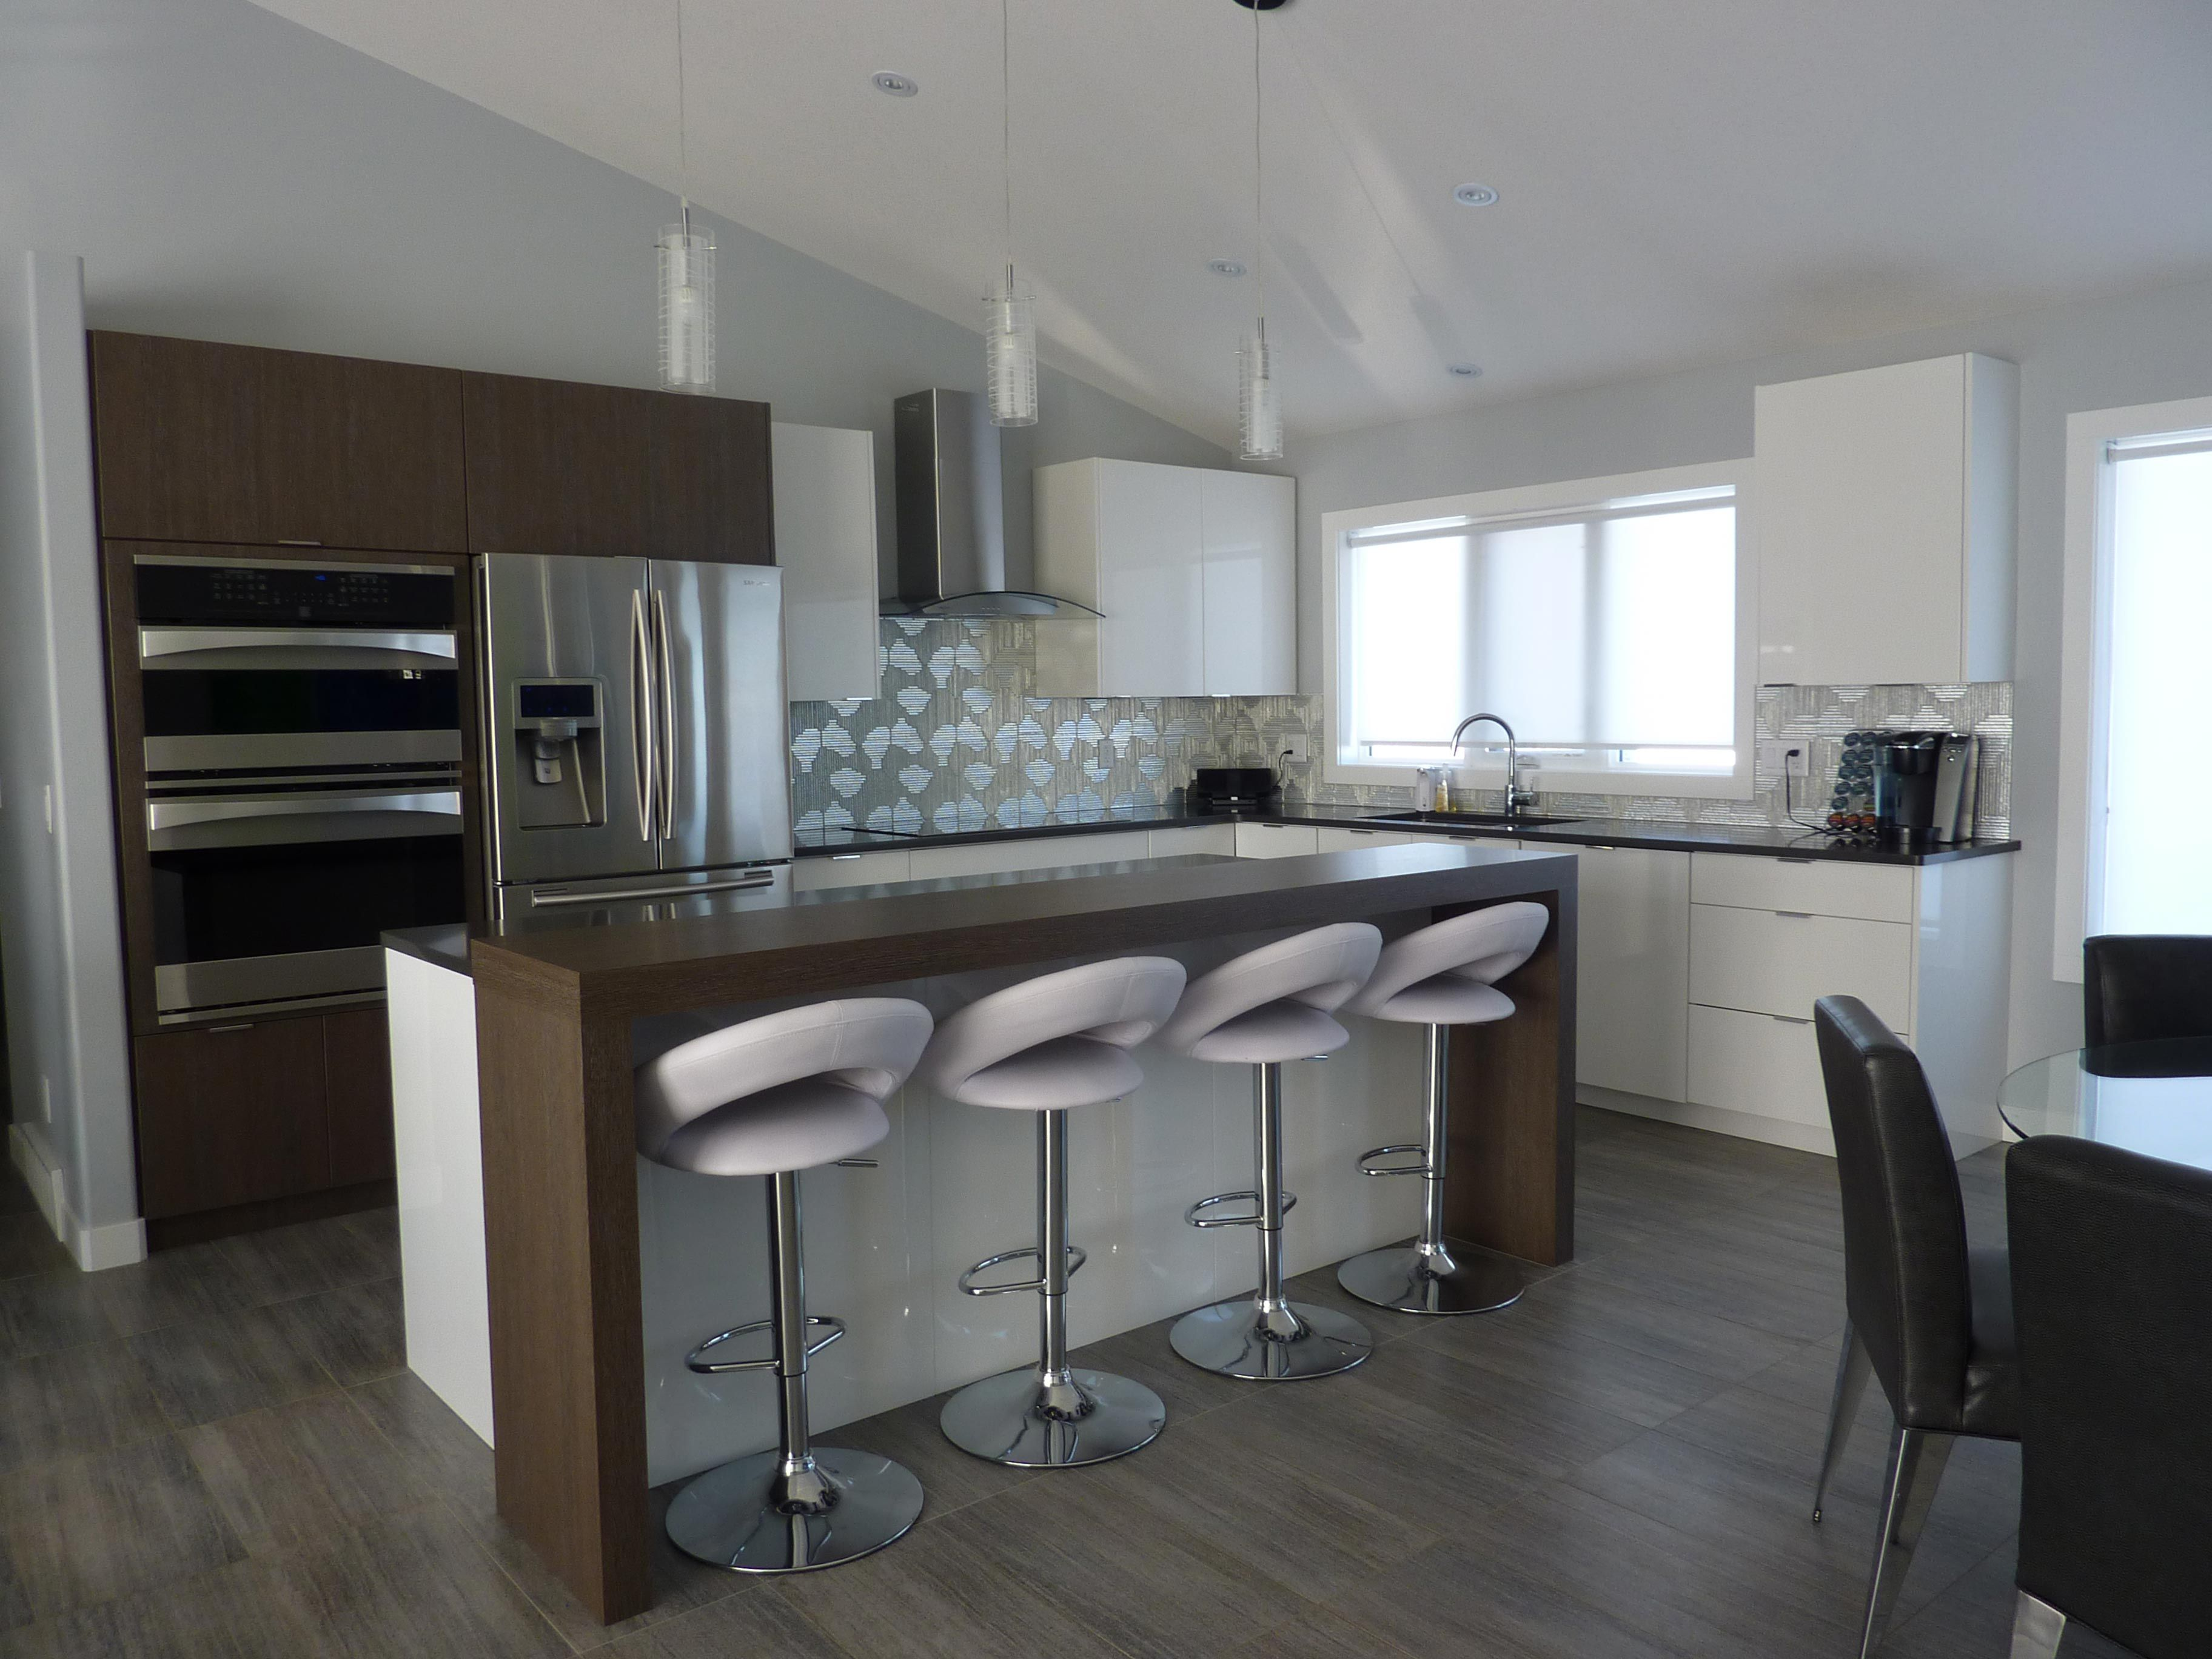 What Do You Think Of This Modern Urban Style Kitchen From Kitchen